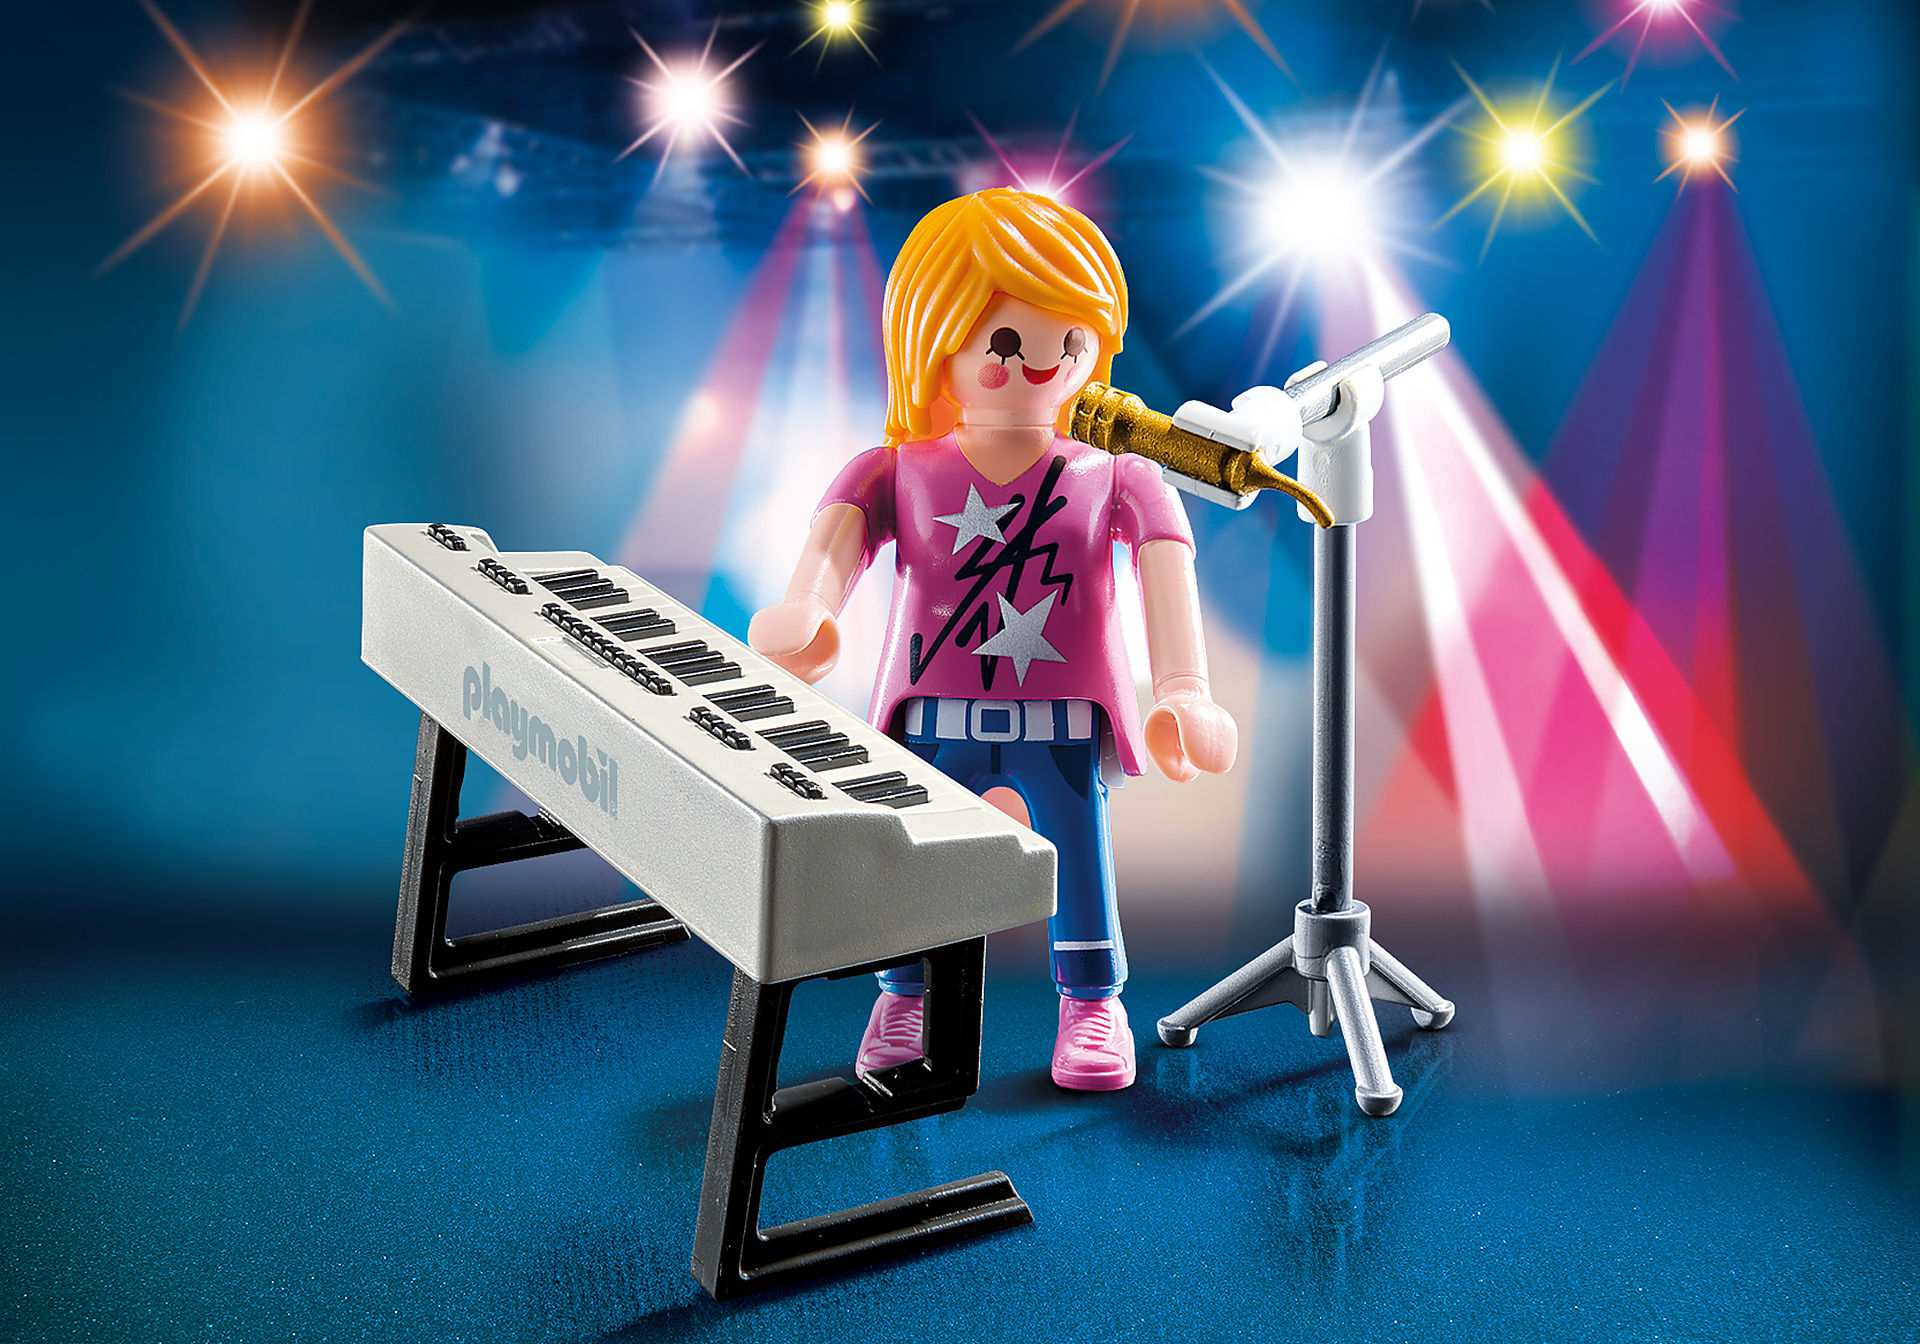 http://media.playmobil.com/i/playmobil/9095_product_detail/Sängerin am Keyboard